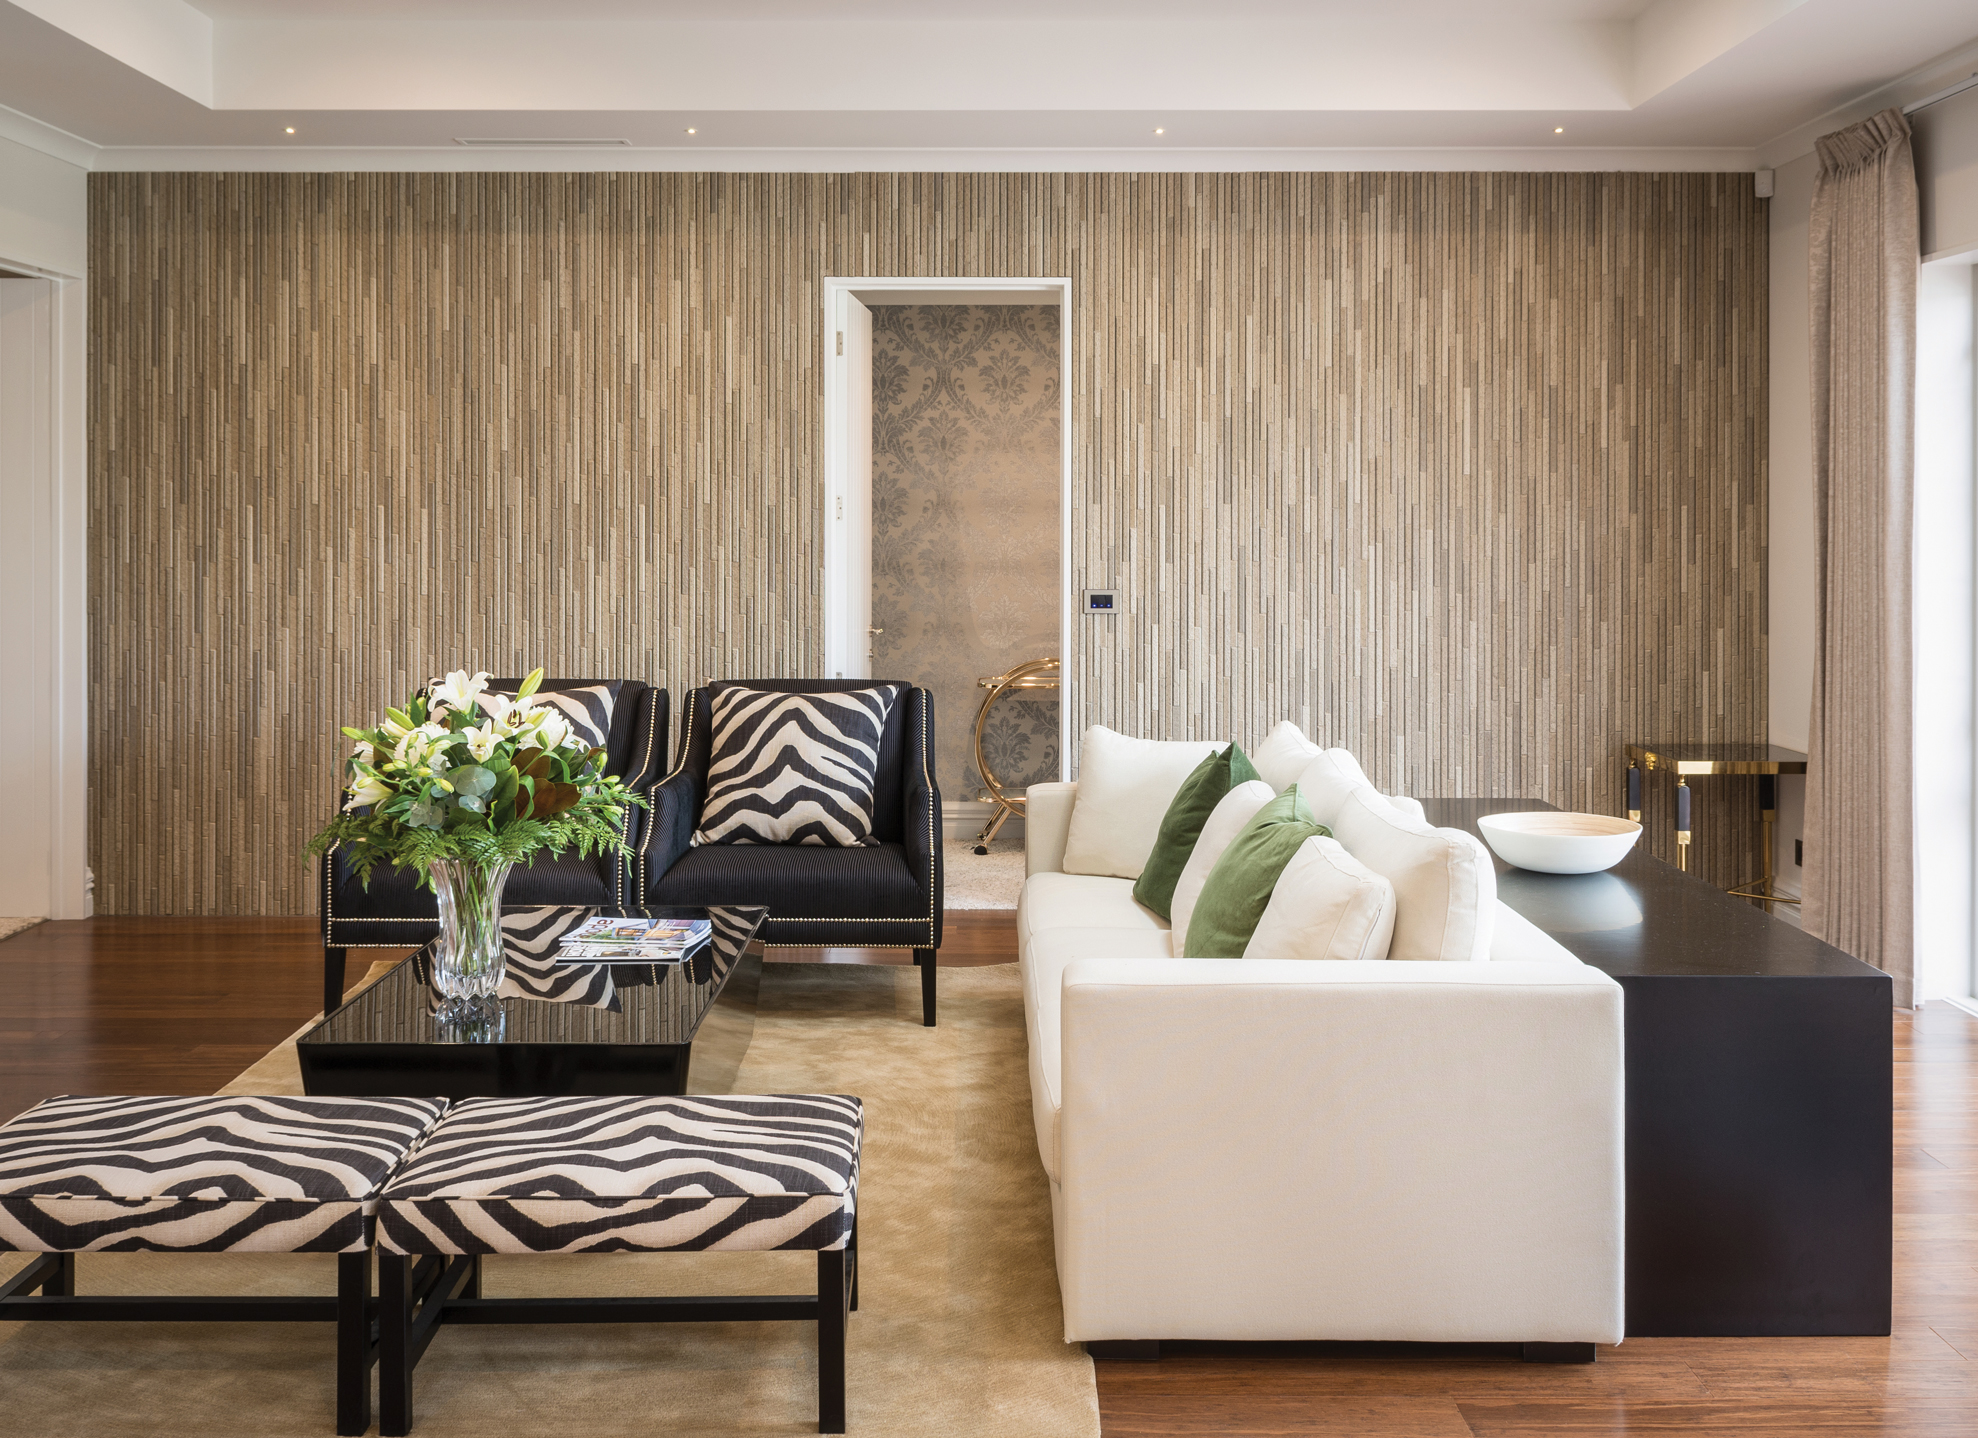 LIVING ROOM:  The textured wall tiles installed by J & C Tiling give this home an opulent and classic feel.